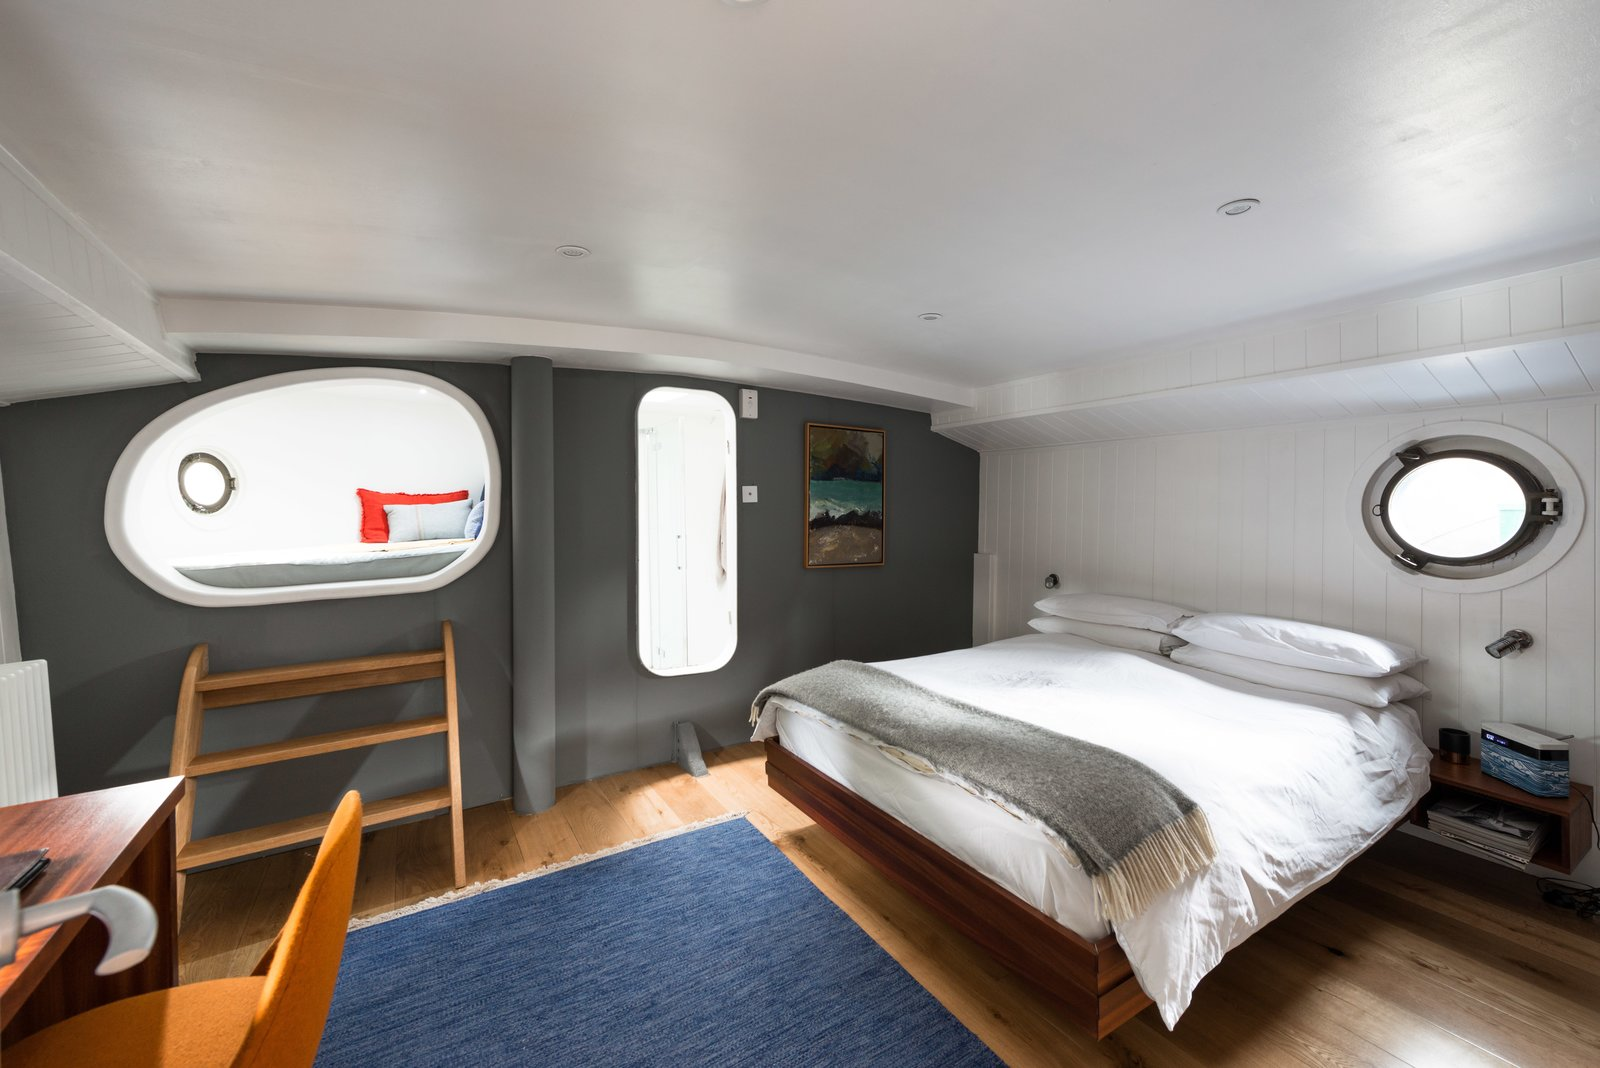 Bedroom, Bed, Wall Lighting, Light Hardwood Floor, and Rug Floor The Master Bedroom includes a private en-suite, desk, and  Photo 7 of 9 in Londoners Can Live in This Scandinavian-Inspired, Converted Barge For $424K